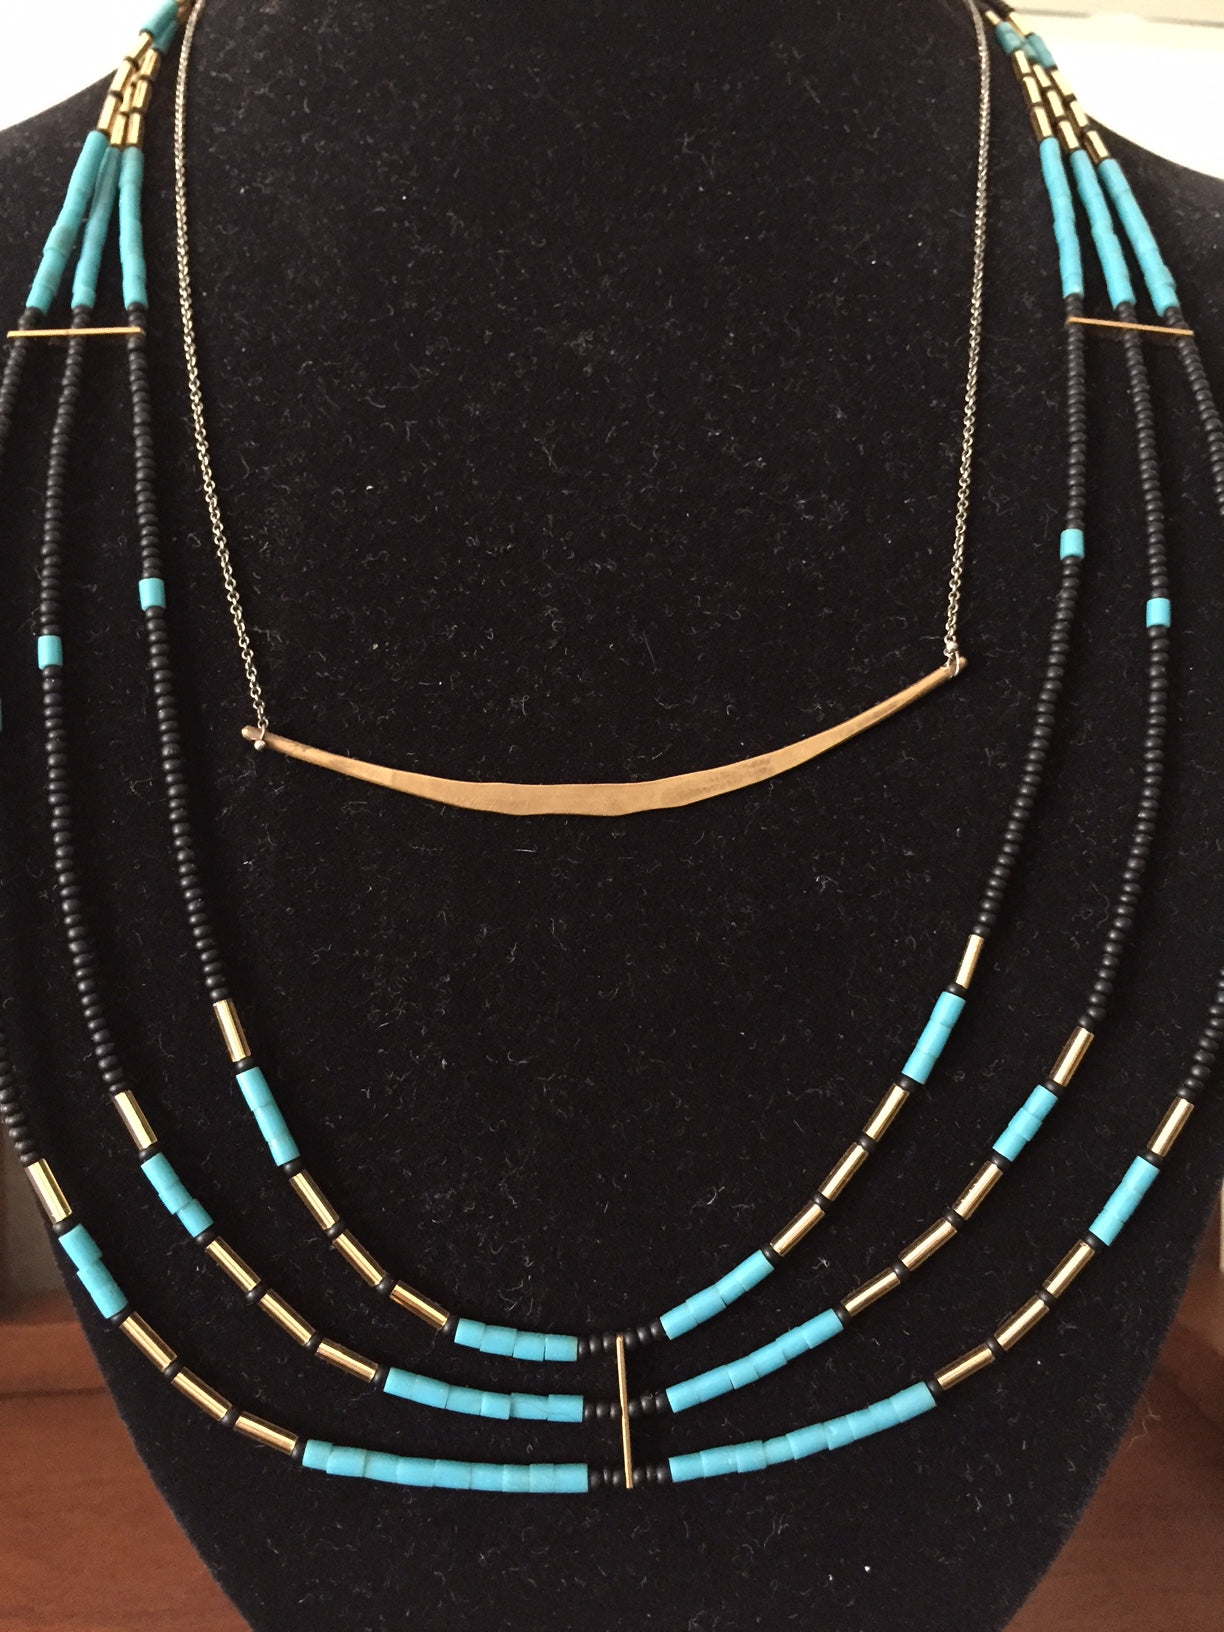 Sonora Necklace by Lunasol